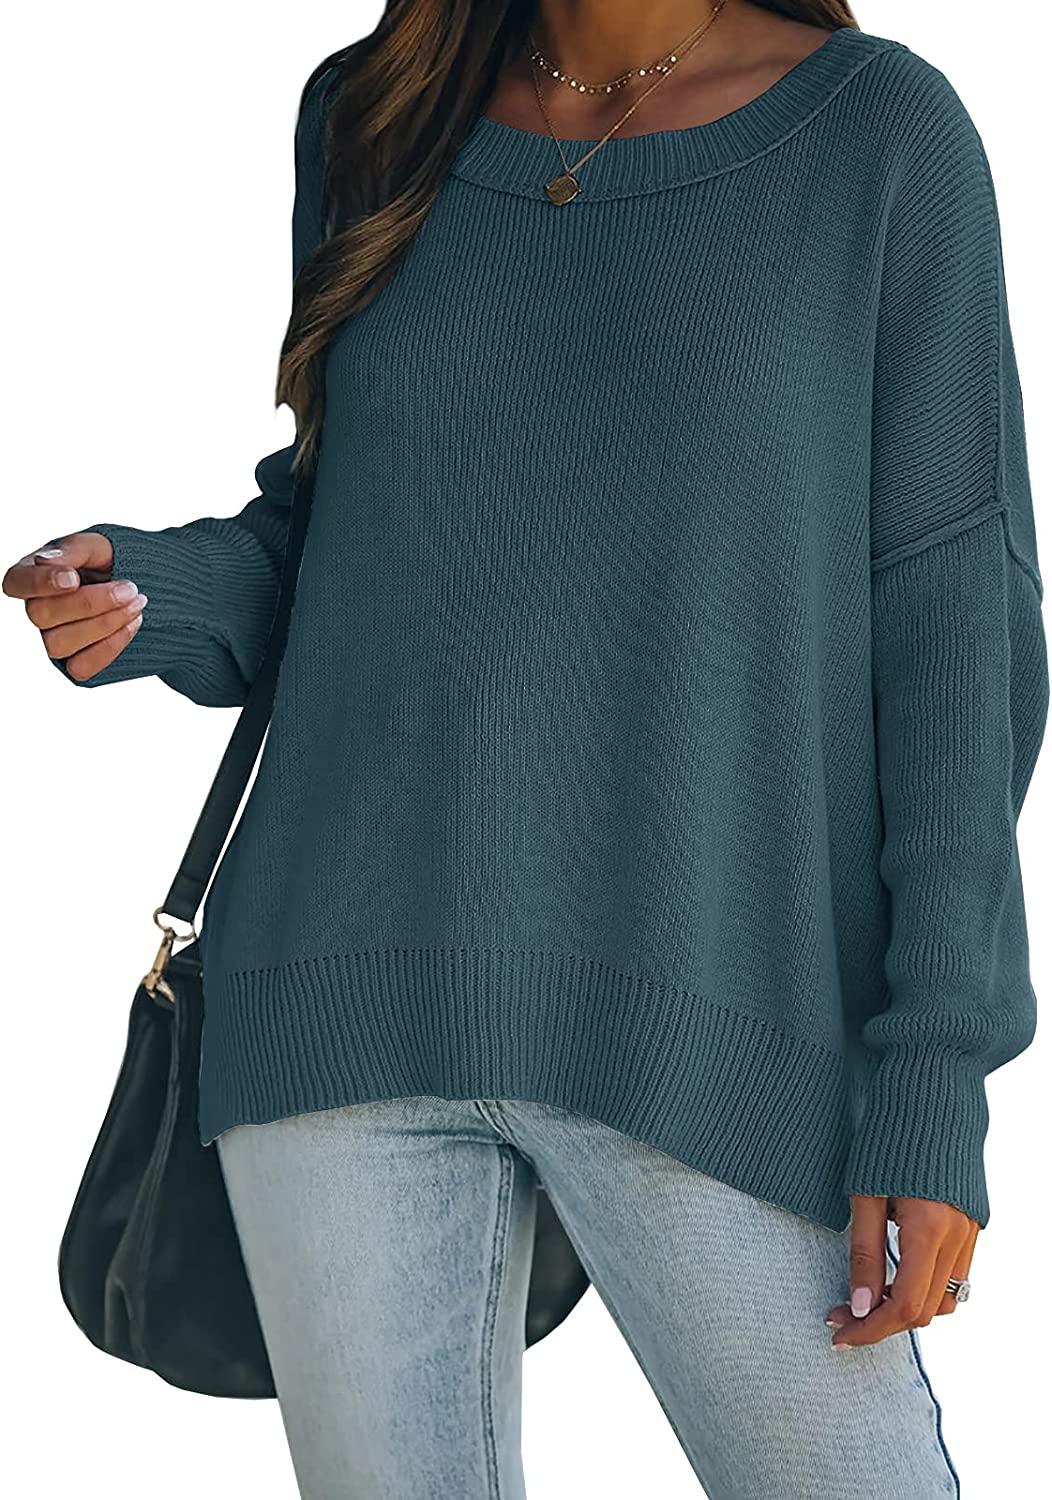 Wenrine Womens Oversized Sweaters Boat Neck Long Sleeve Side Slit Casual Knit Pullover Sweater Tops